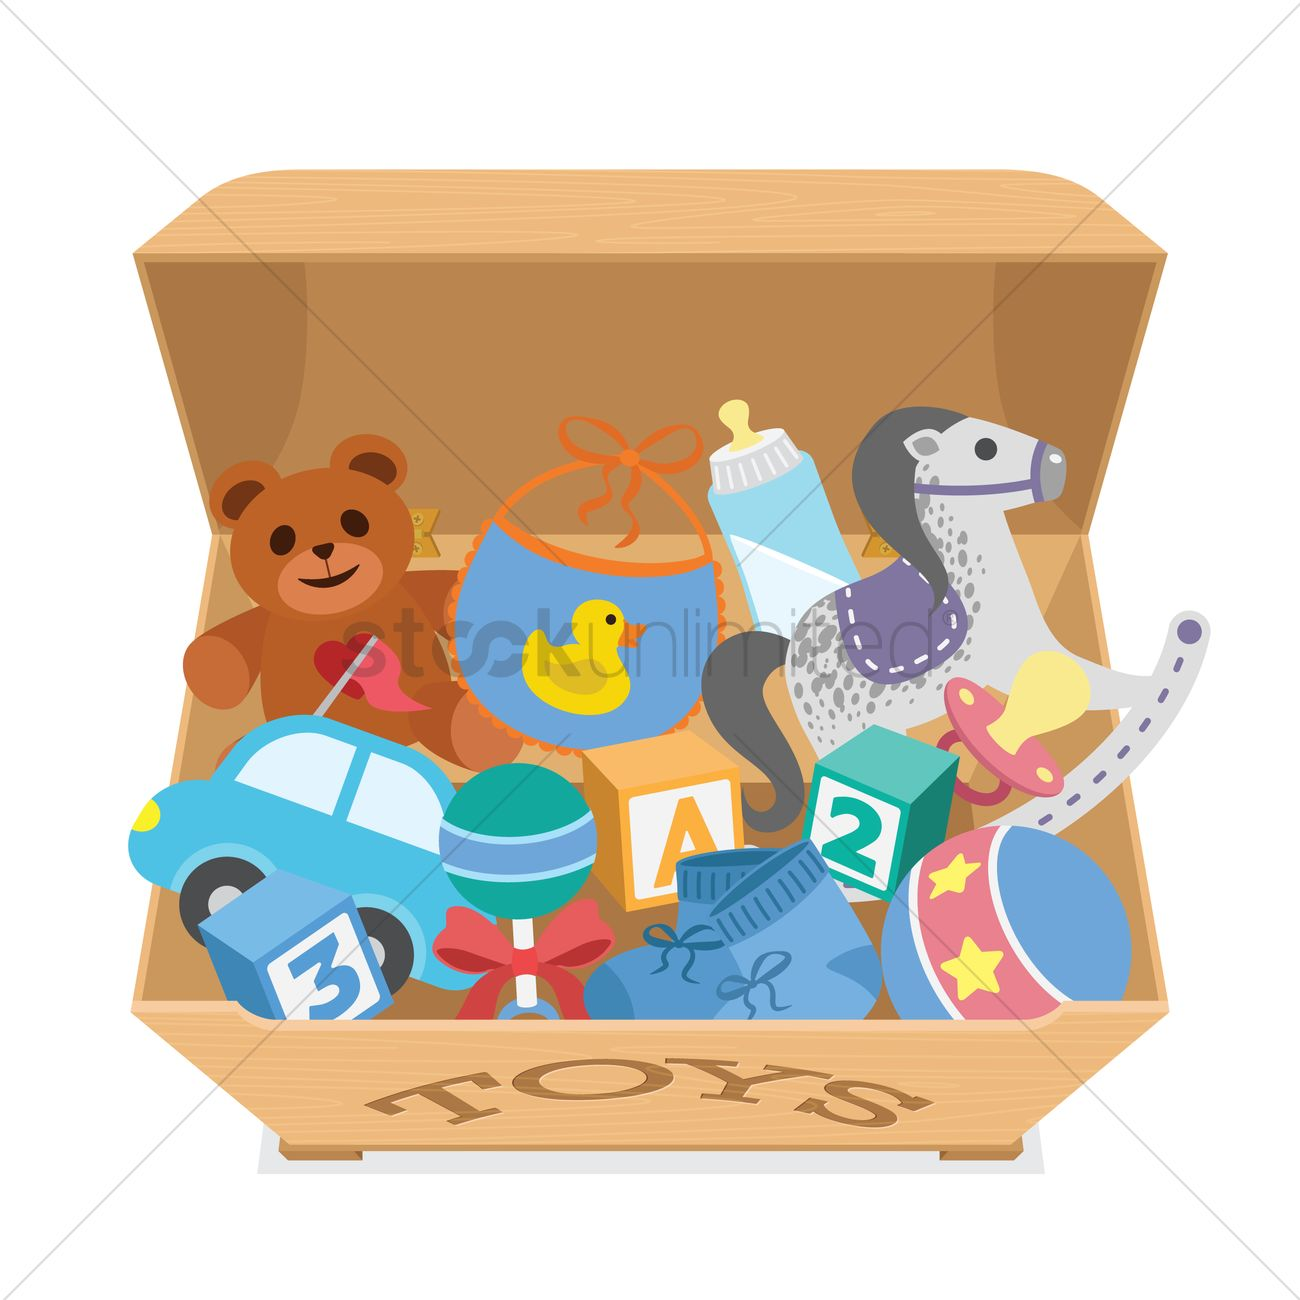 Toy Box Clip Art : A box filled with toys vector image stockunlimited